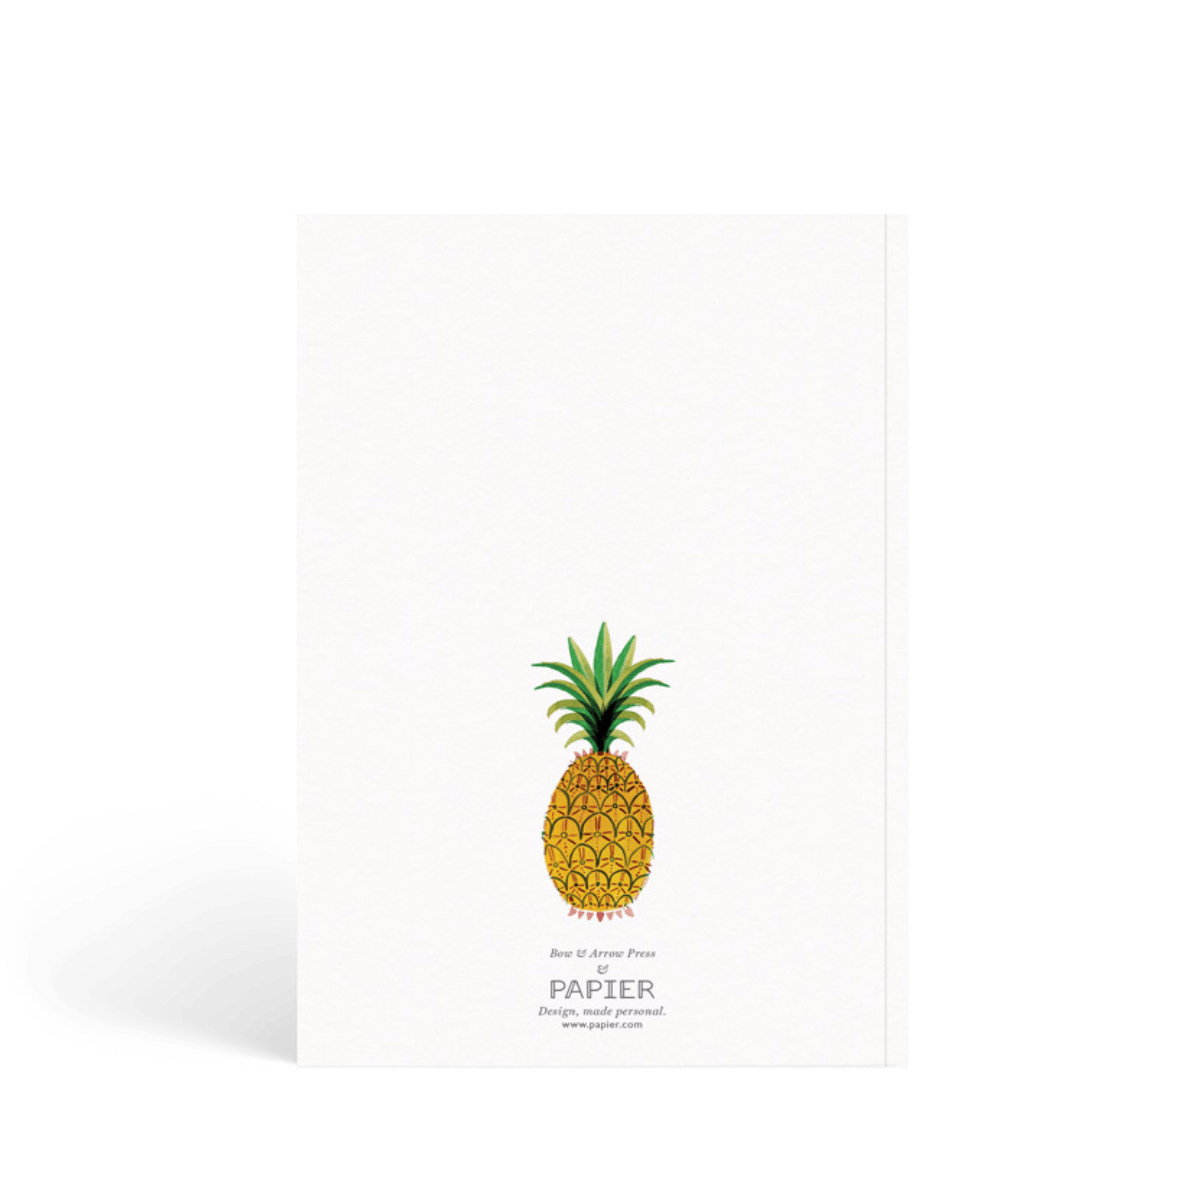 Https%3a%2f%2fwww.papier.com%2fproduct image%2f6287%2f5%2fpineapple 1609 back 1461596795.png?ixlib=rb 1.1